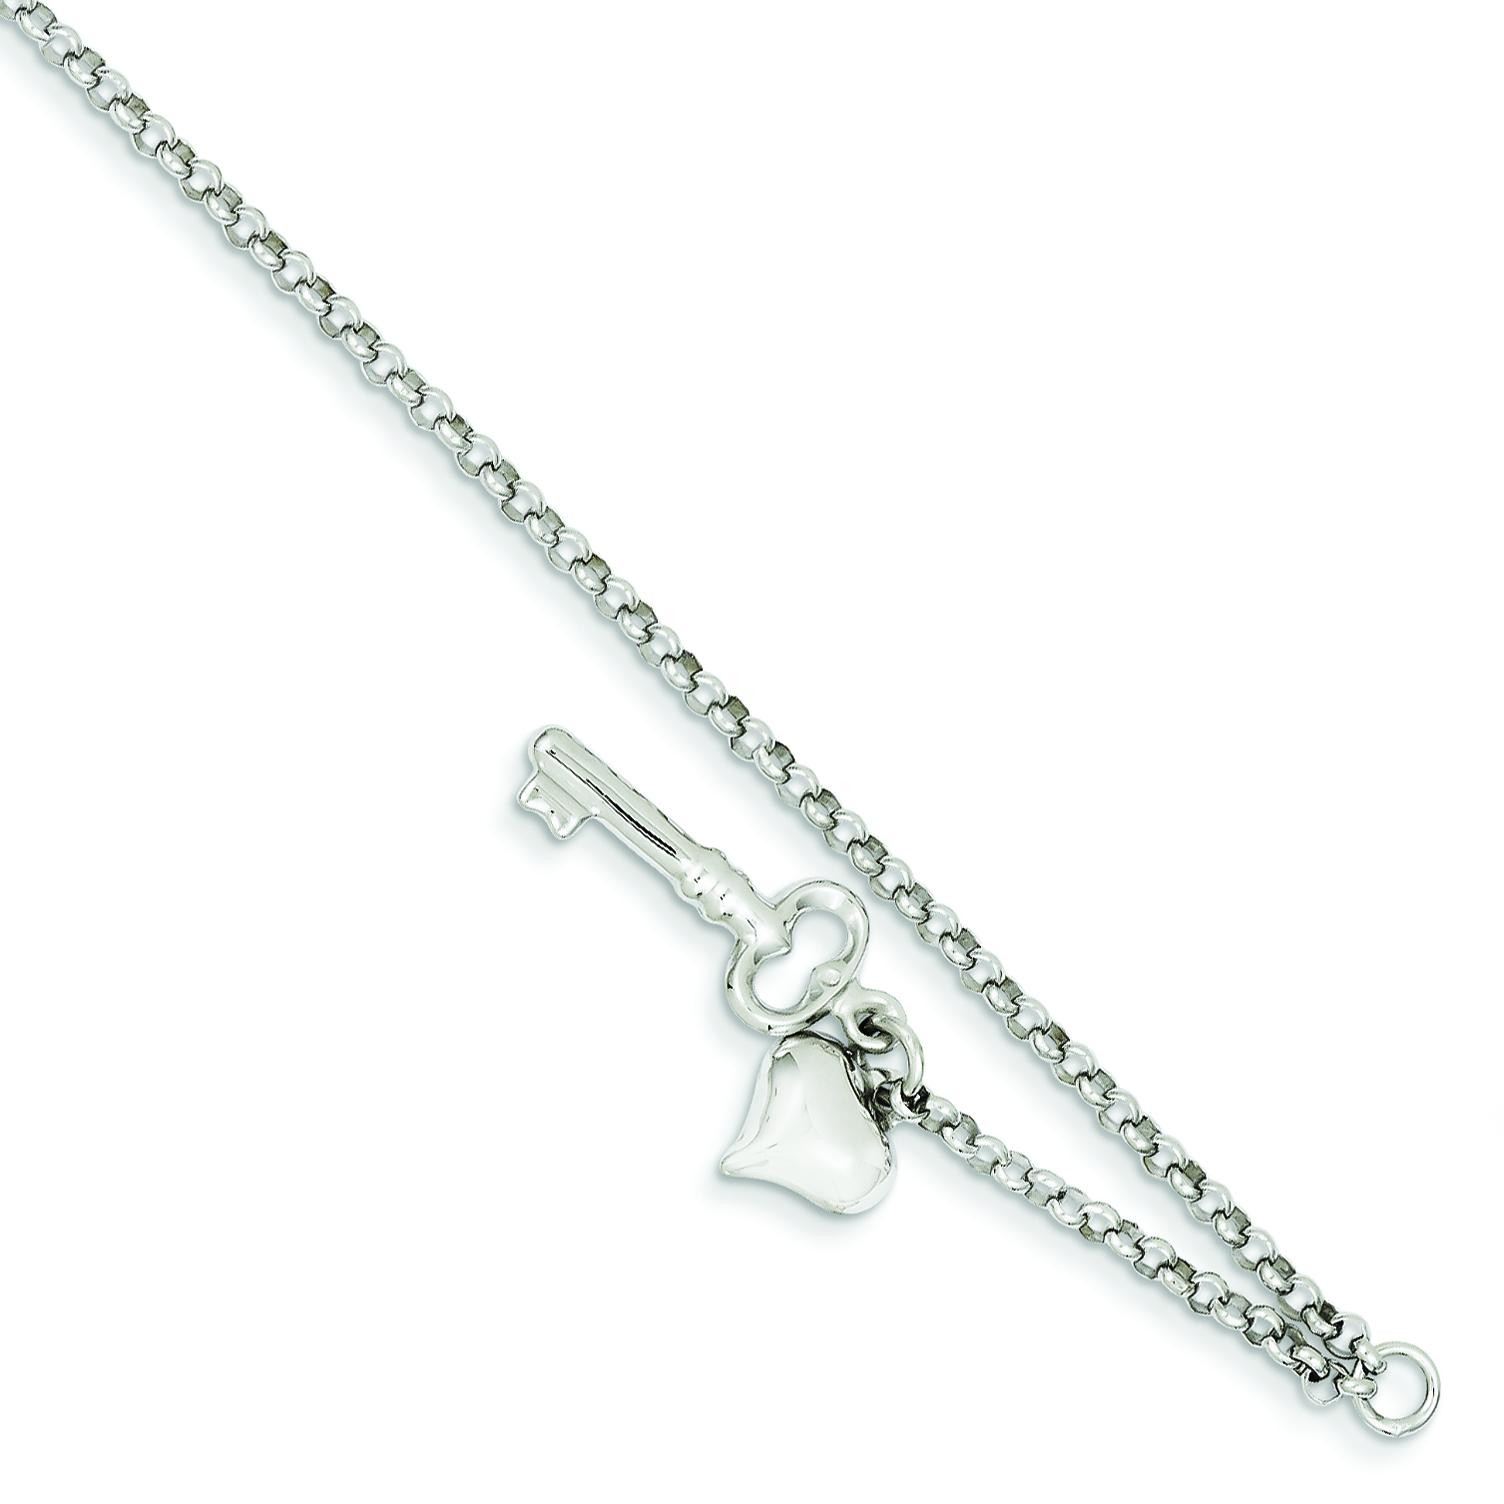 Puffed Heart Key Anklet in 14k White Gold